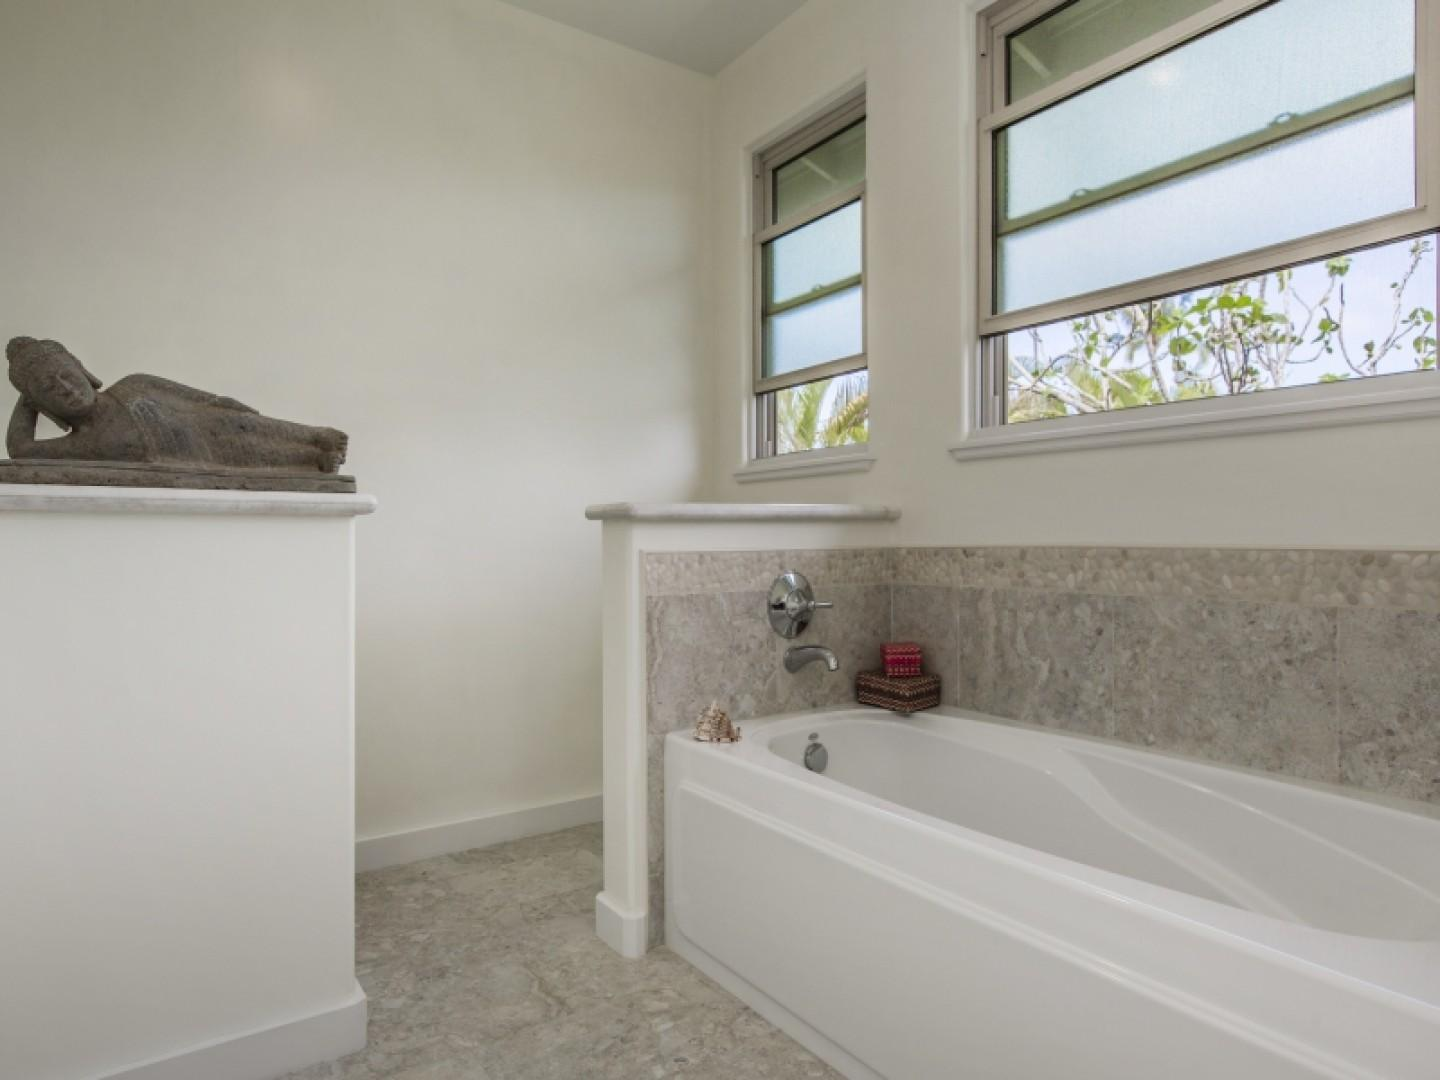 Master bath with deep tub for relaxing.